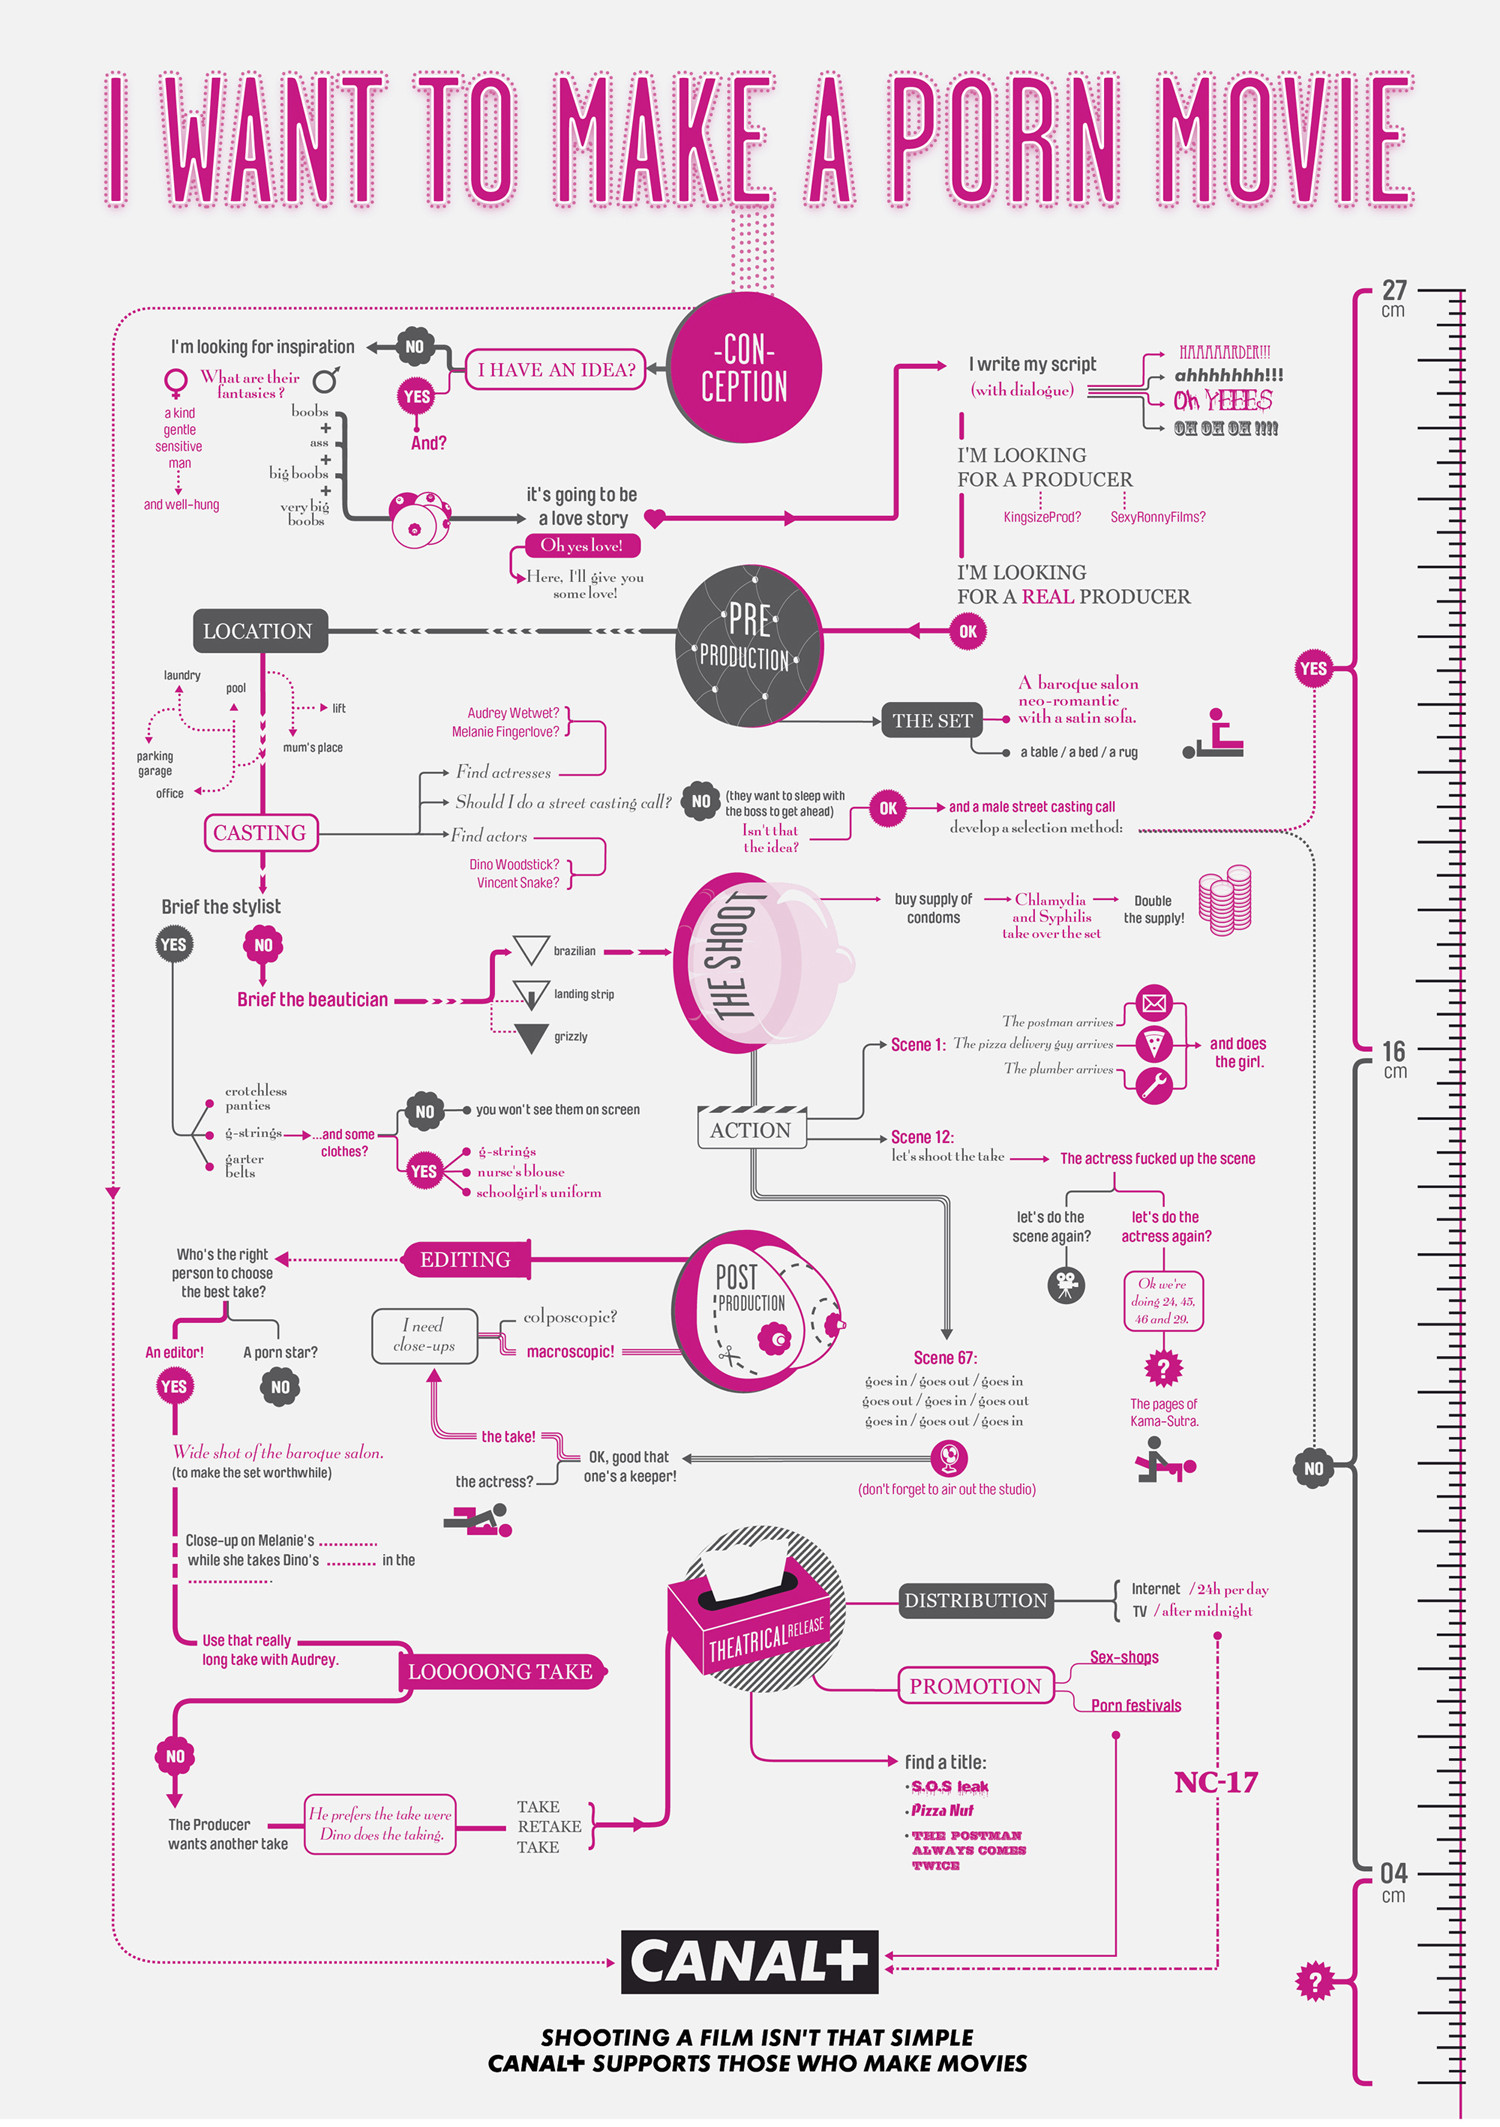 The Formulas For Making A Horror, Action or Porn Movie Infographic